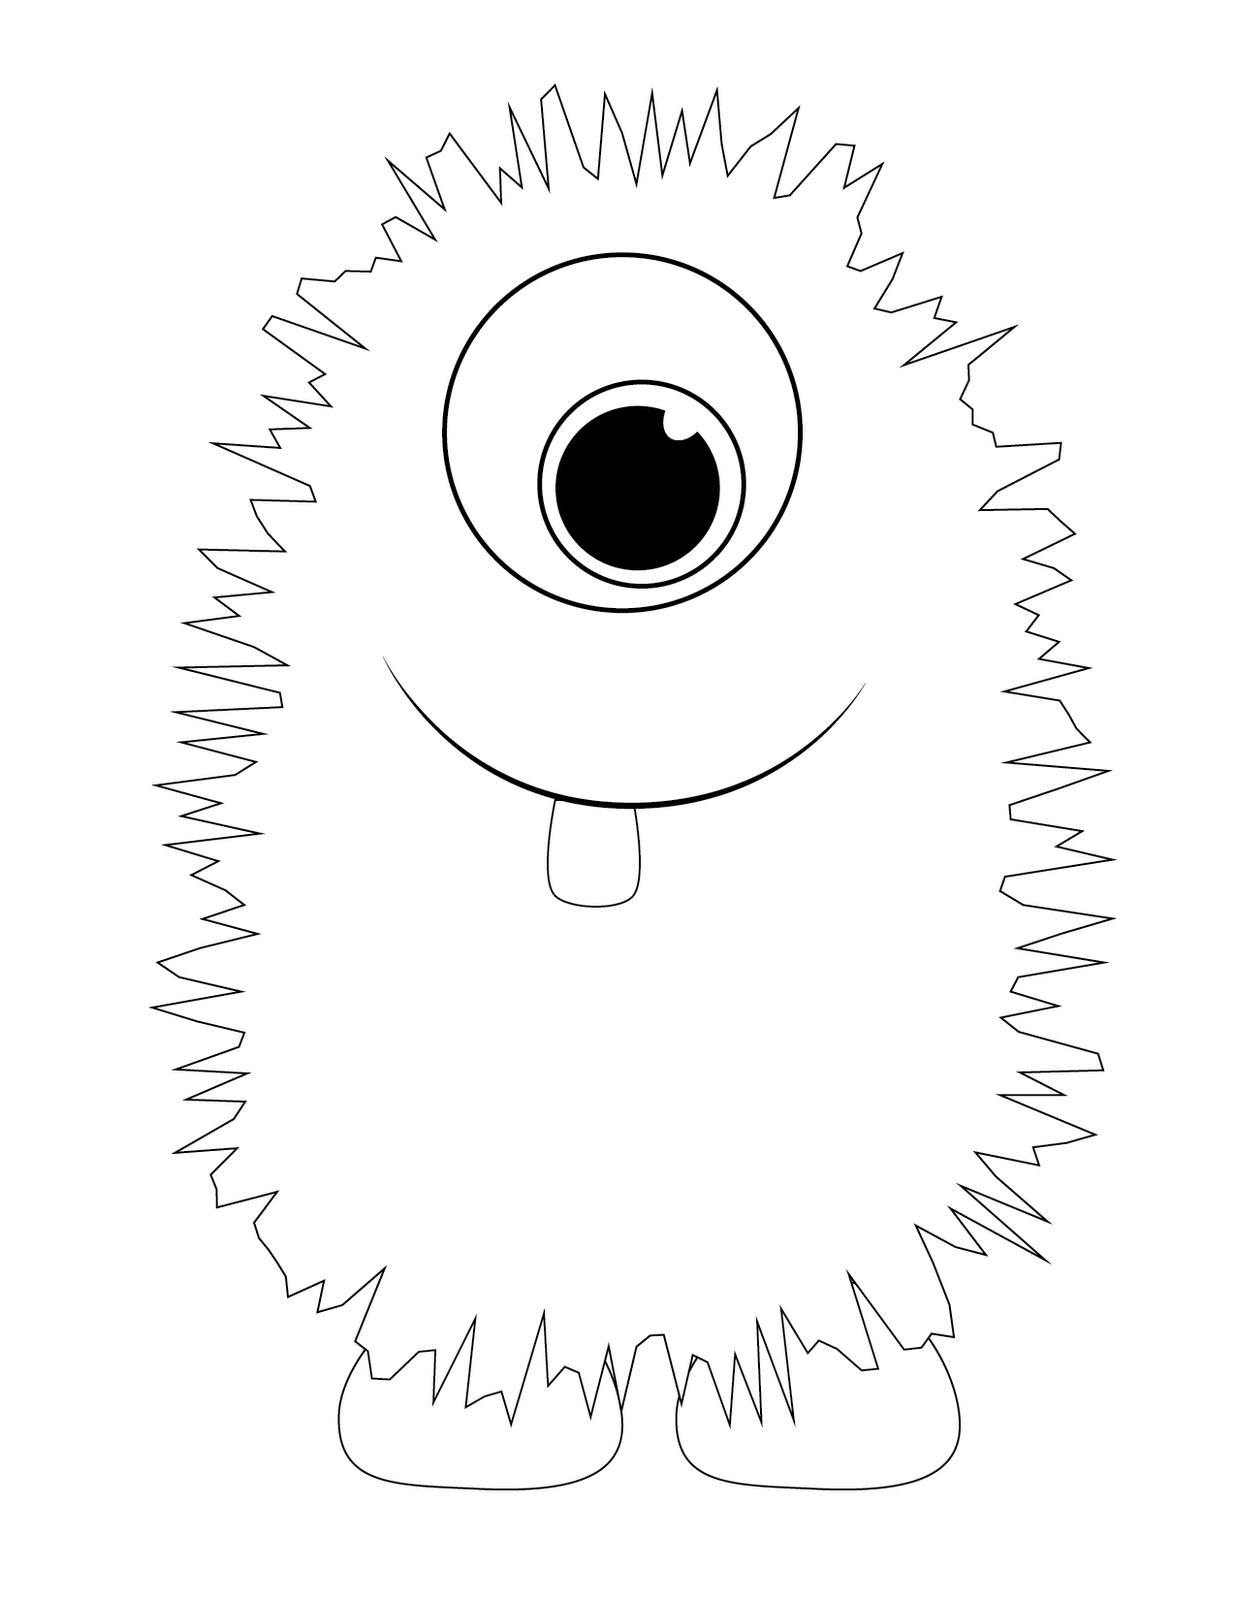 Cute Monster Coloring Pages Printable Images & Pictures - Becuo ... | 1600x1236